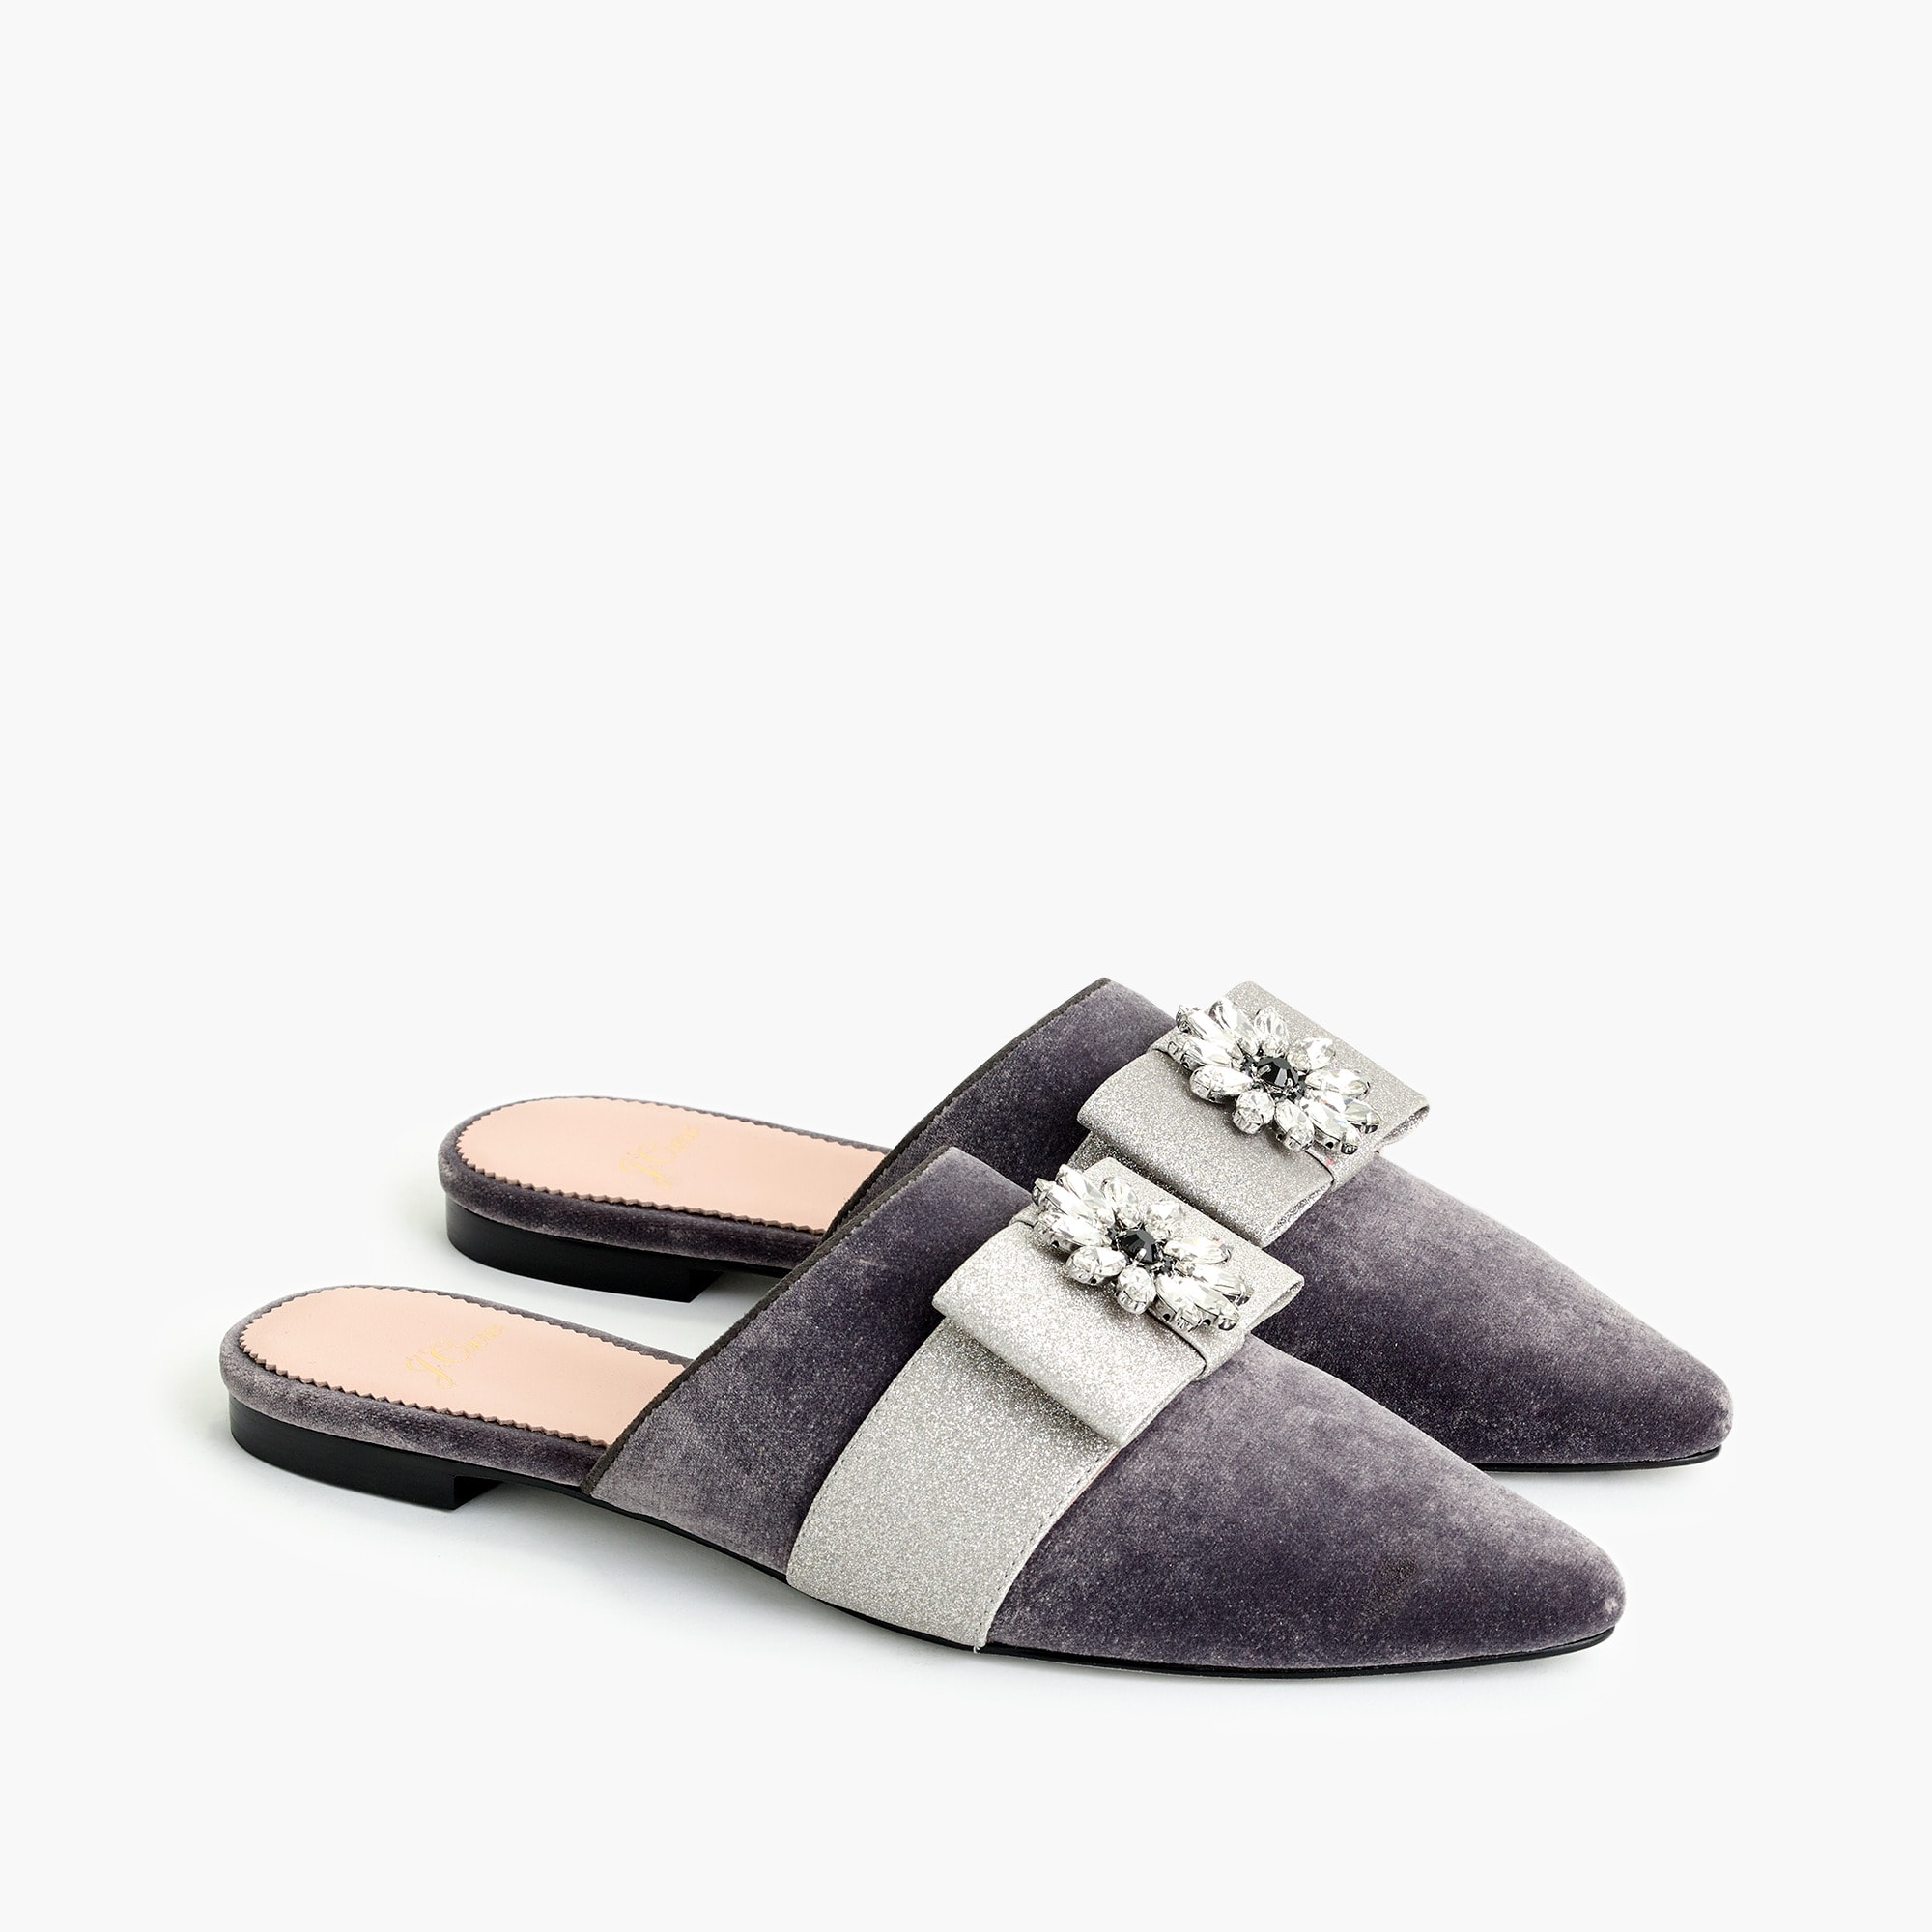 womens Pointed-toe bow slides in velvet